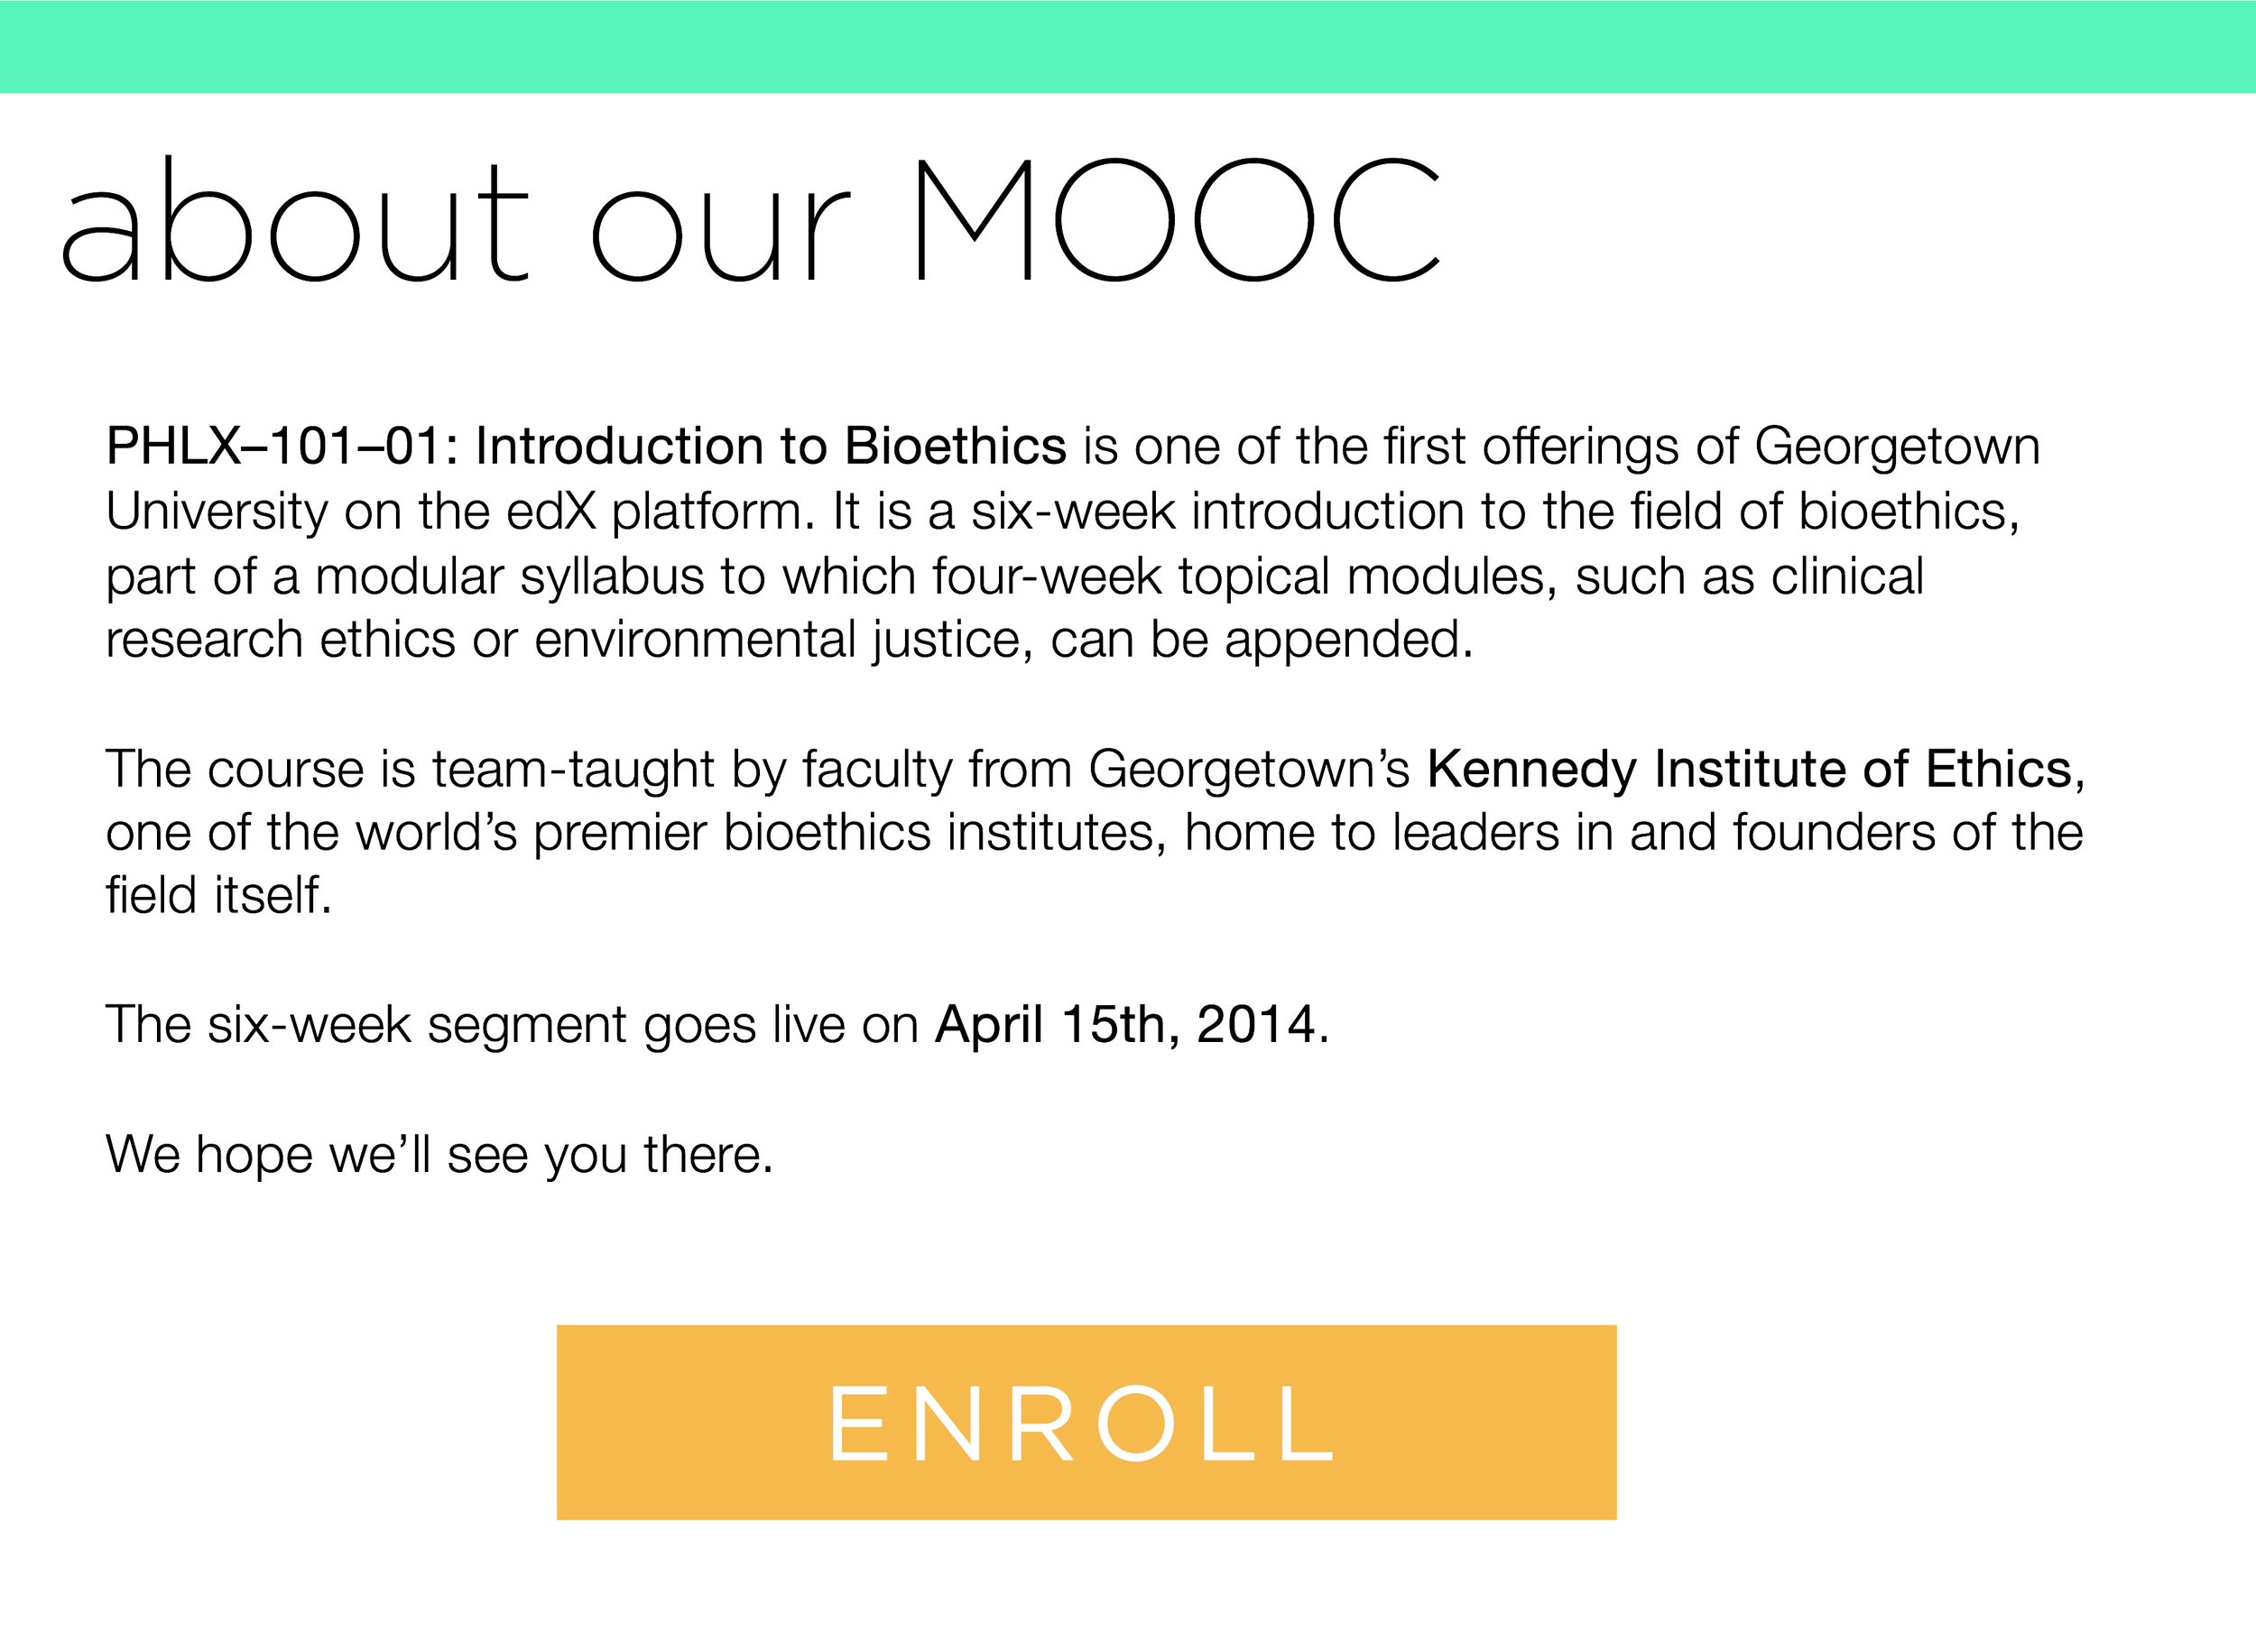 about our MOOC.jpg